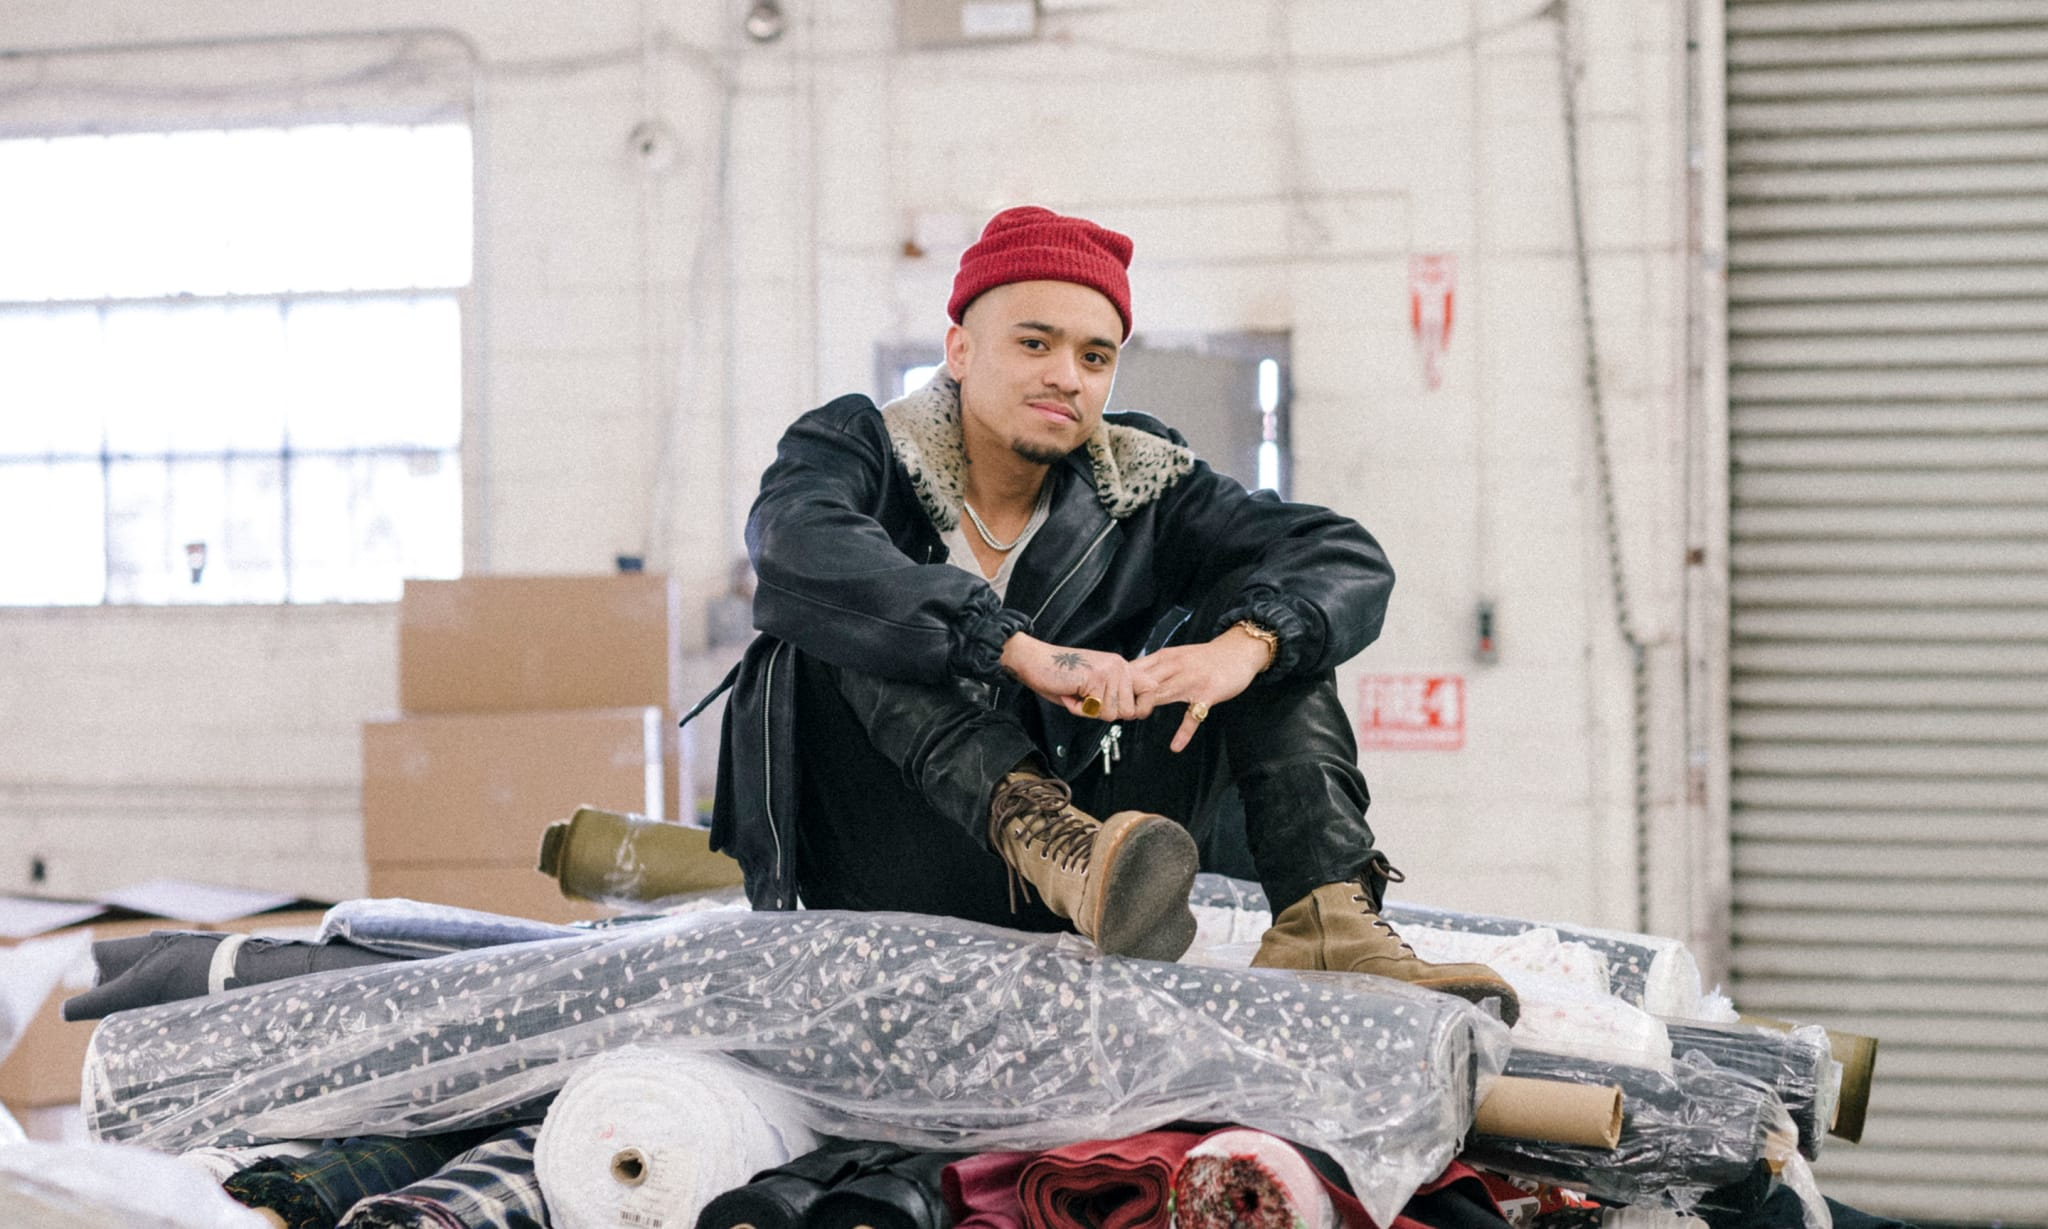 A man in a red beanie hat sitting on rolls of fabric.